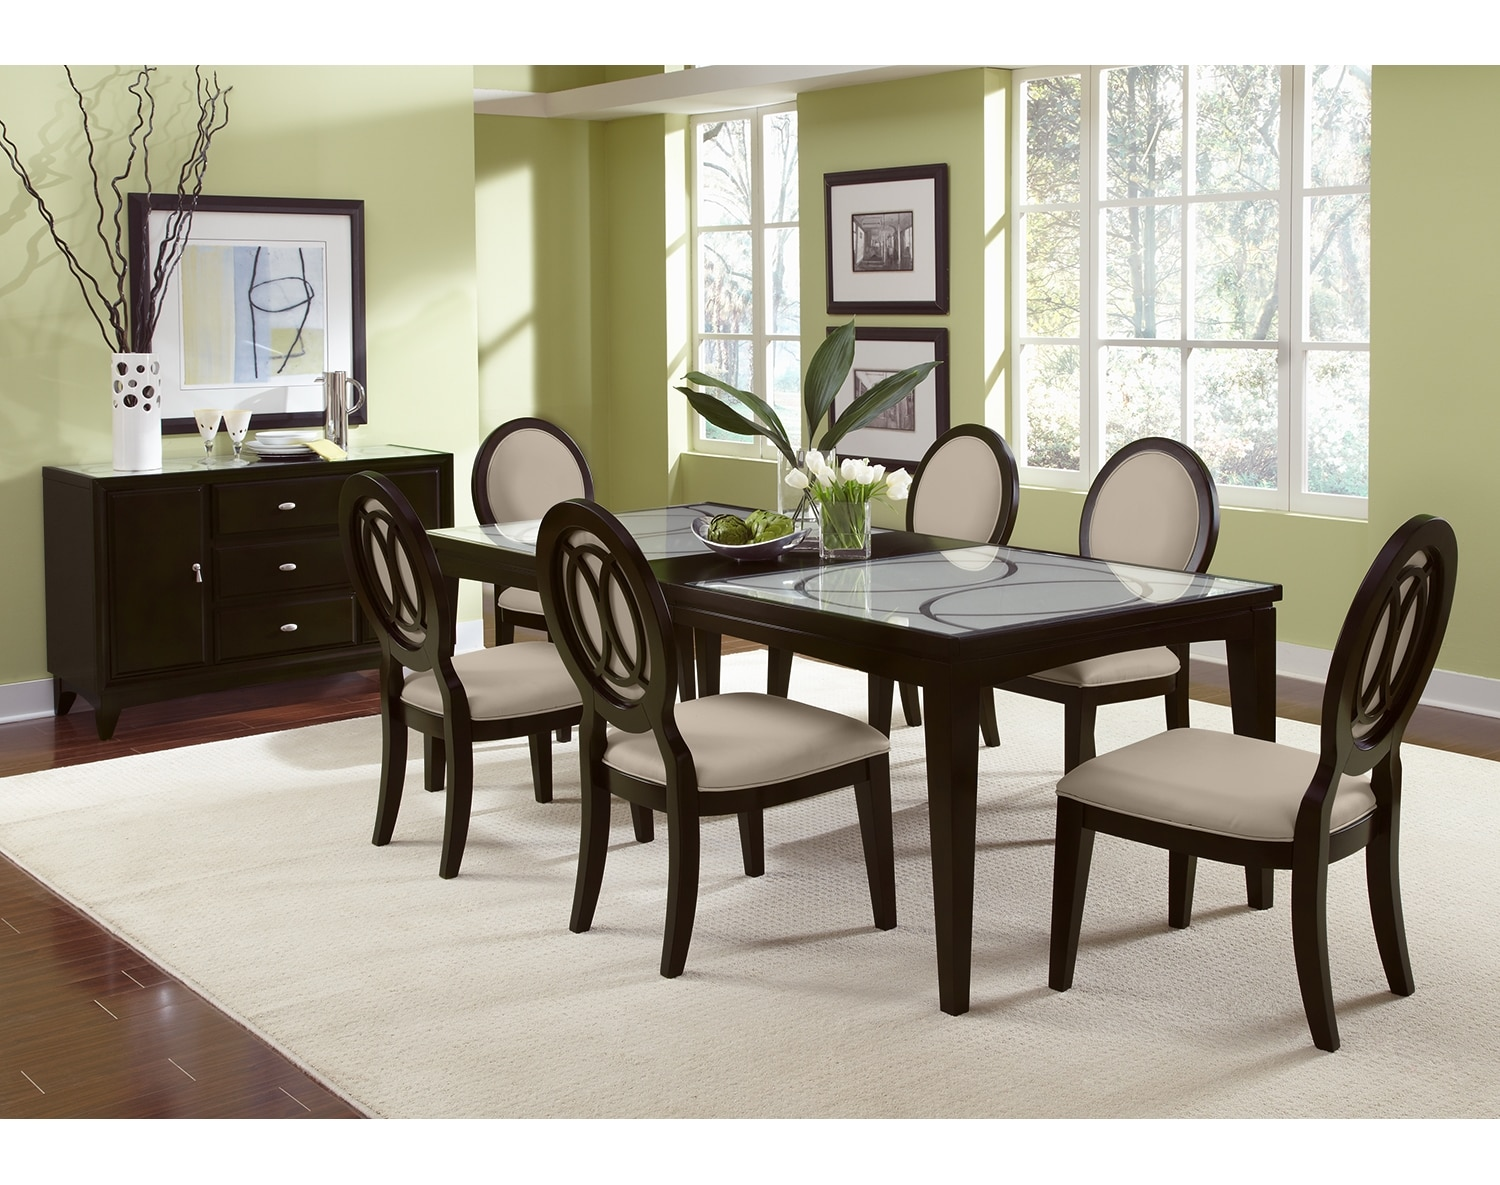 Dining Room Furniture Brands Value City Furniture